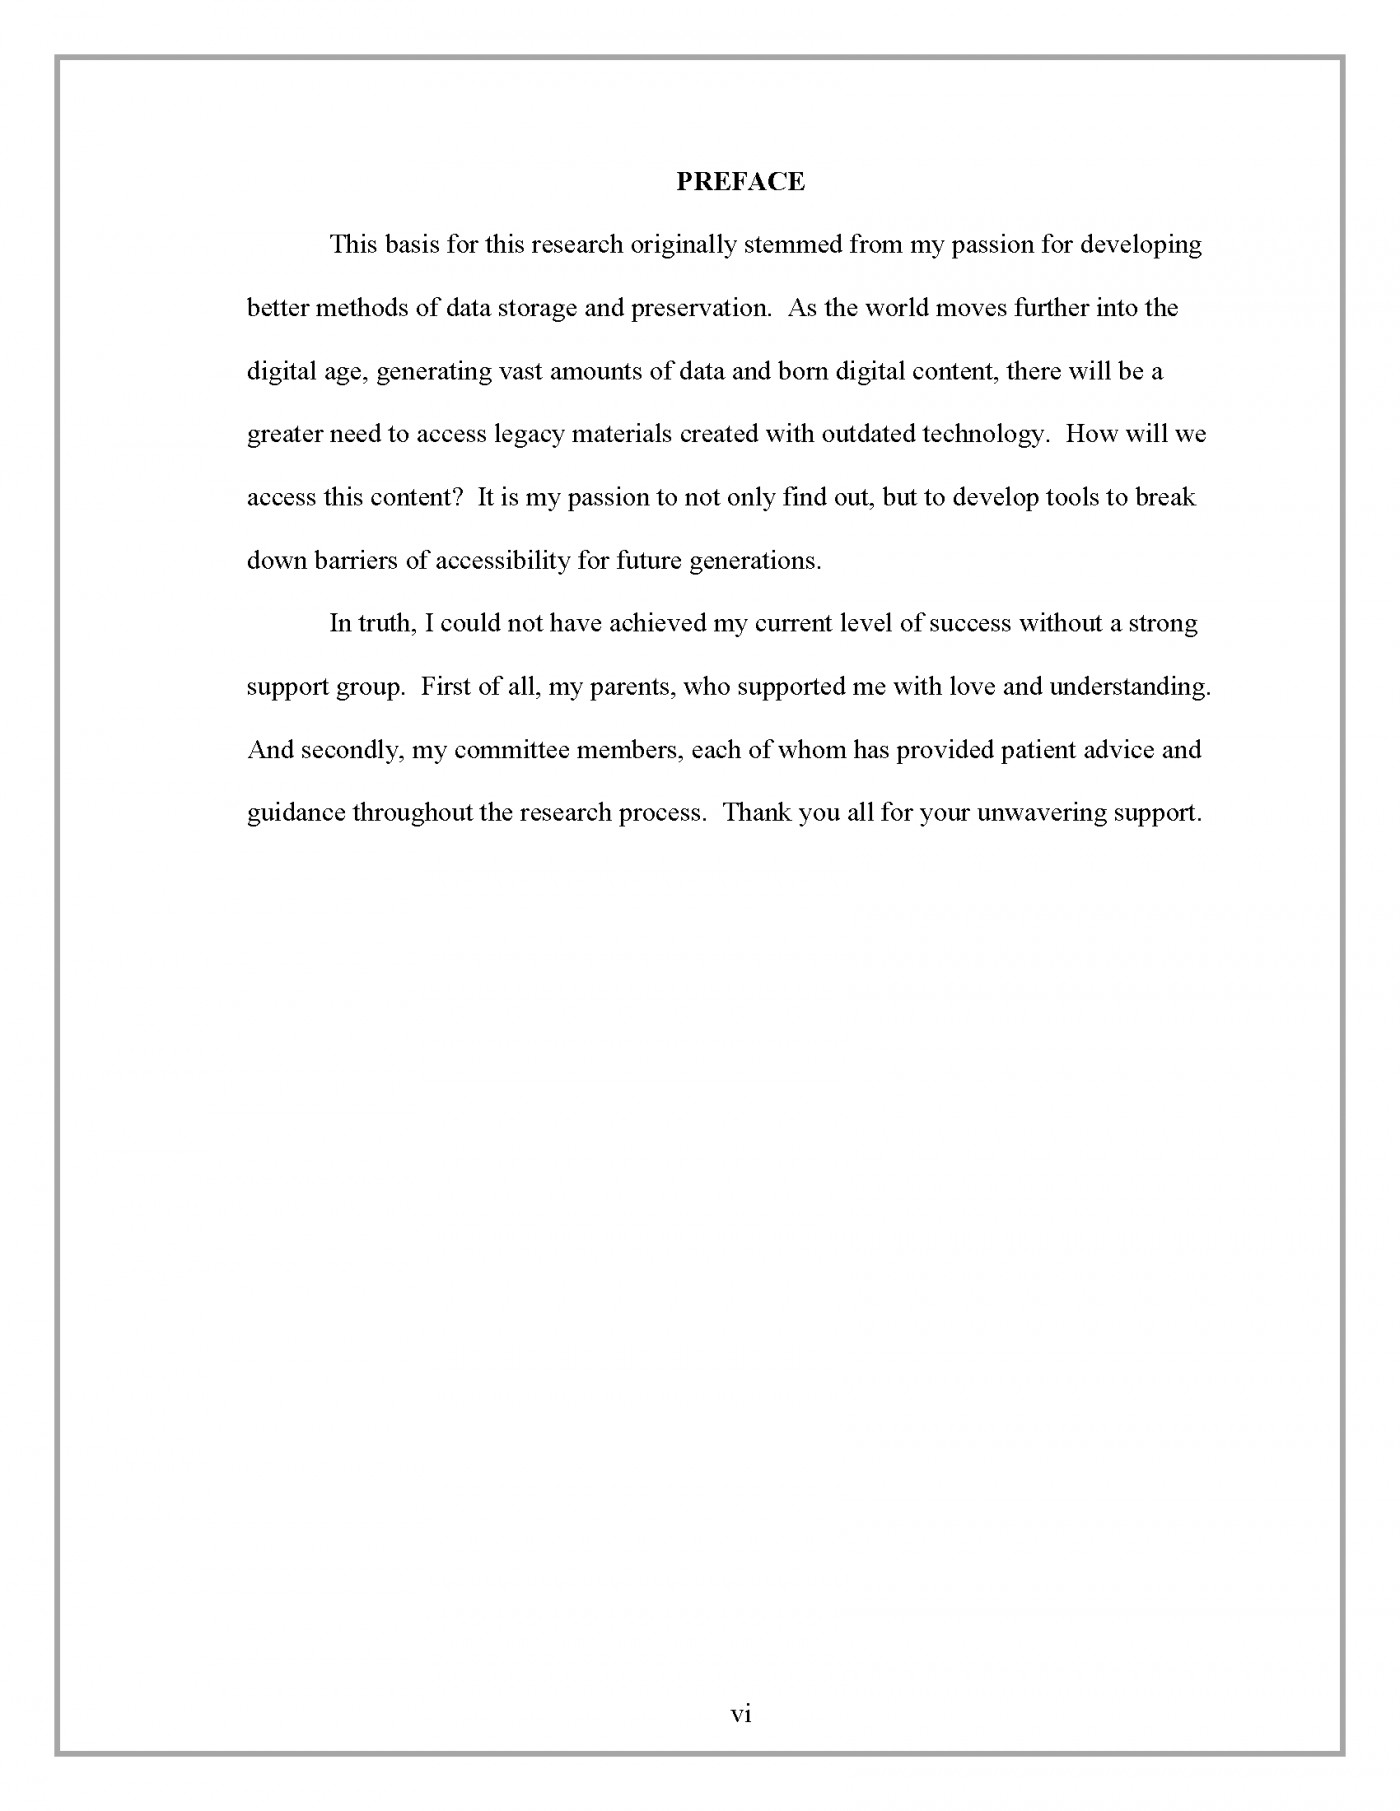 018 Thesis For Research Paper Preface Border Wonderful A Statement On The Holocaust Free Generator Example Pdf 1400